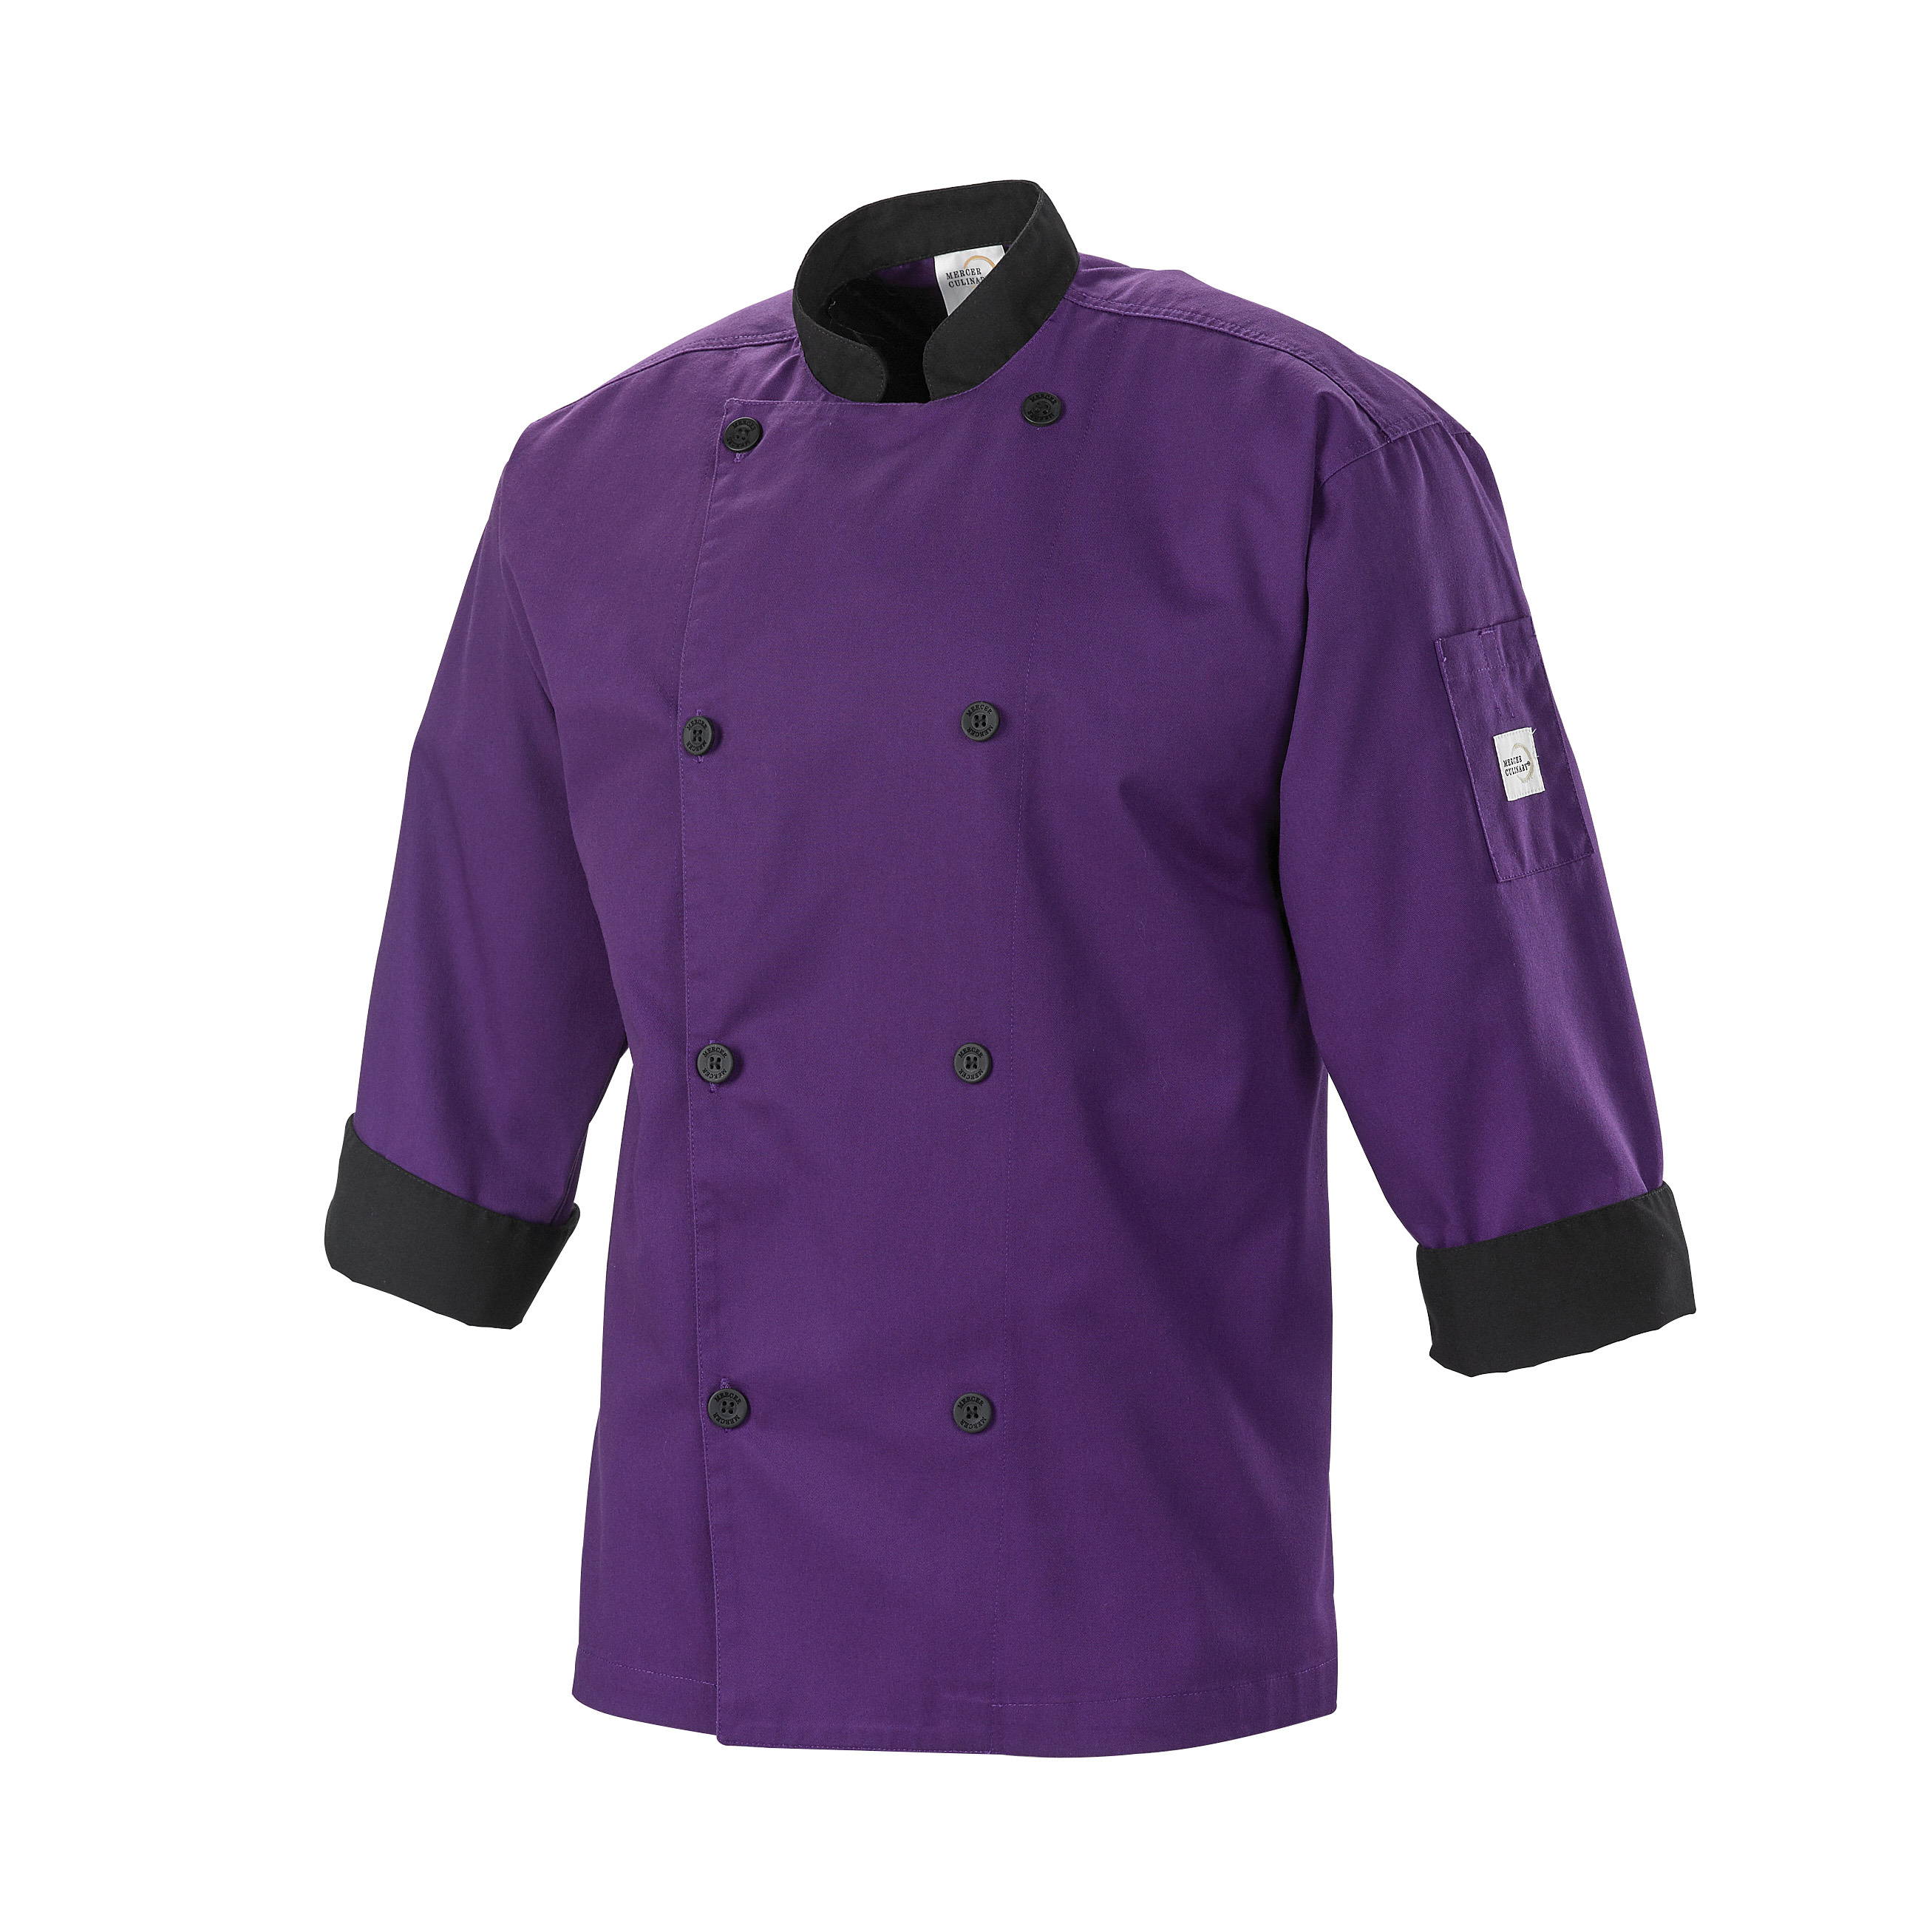 Mercer Culinary M60018PUBL chef's coat